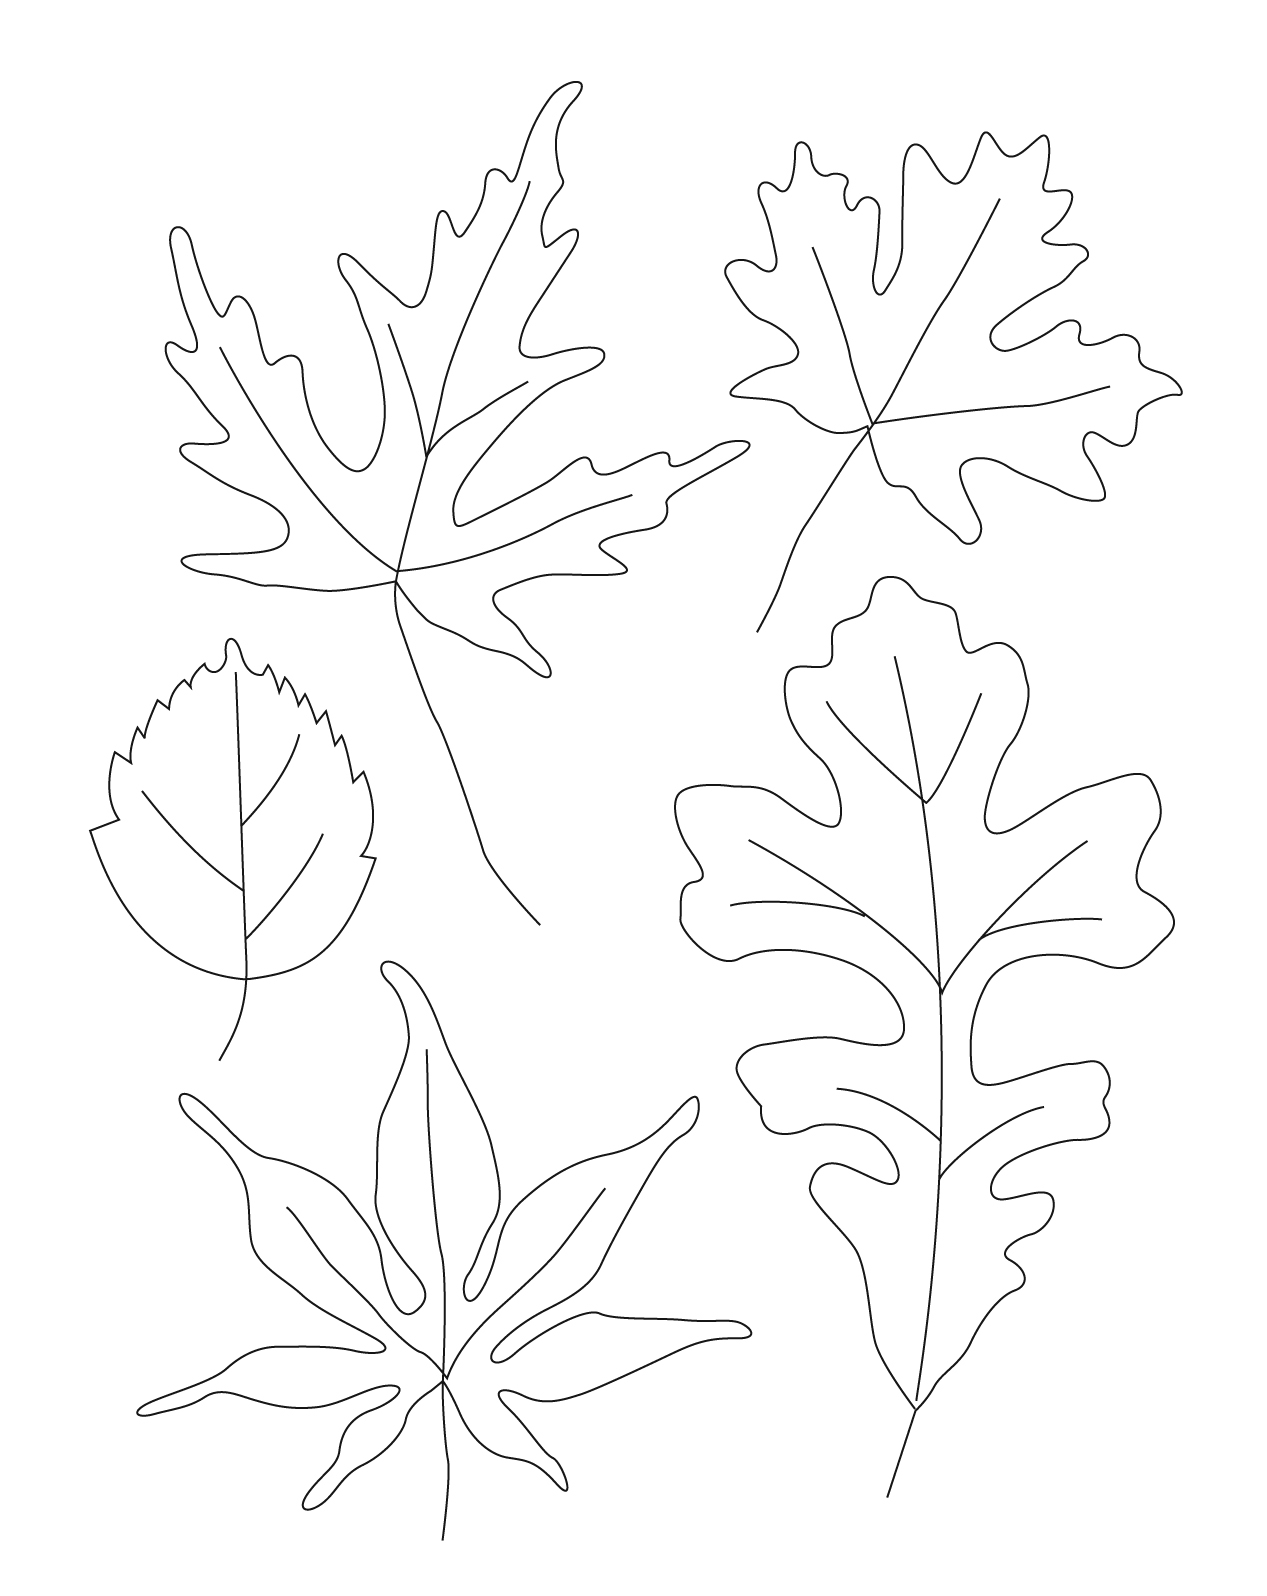 Contour Line Drawing Leaves : Contour leaf drawings welcome to ms long s class